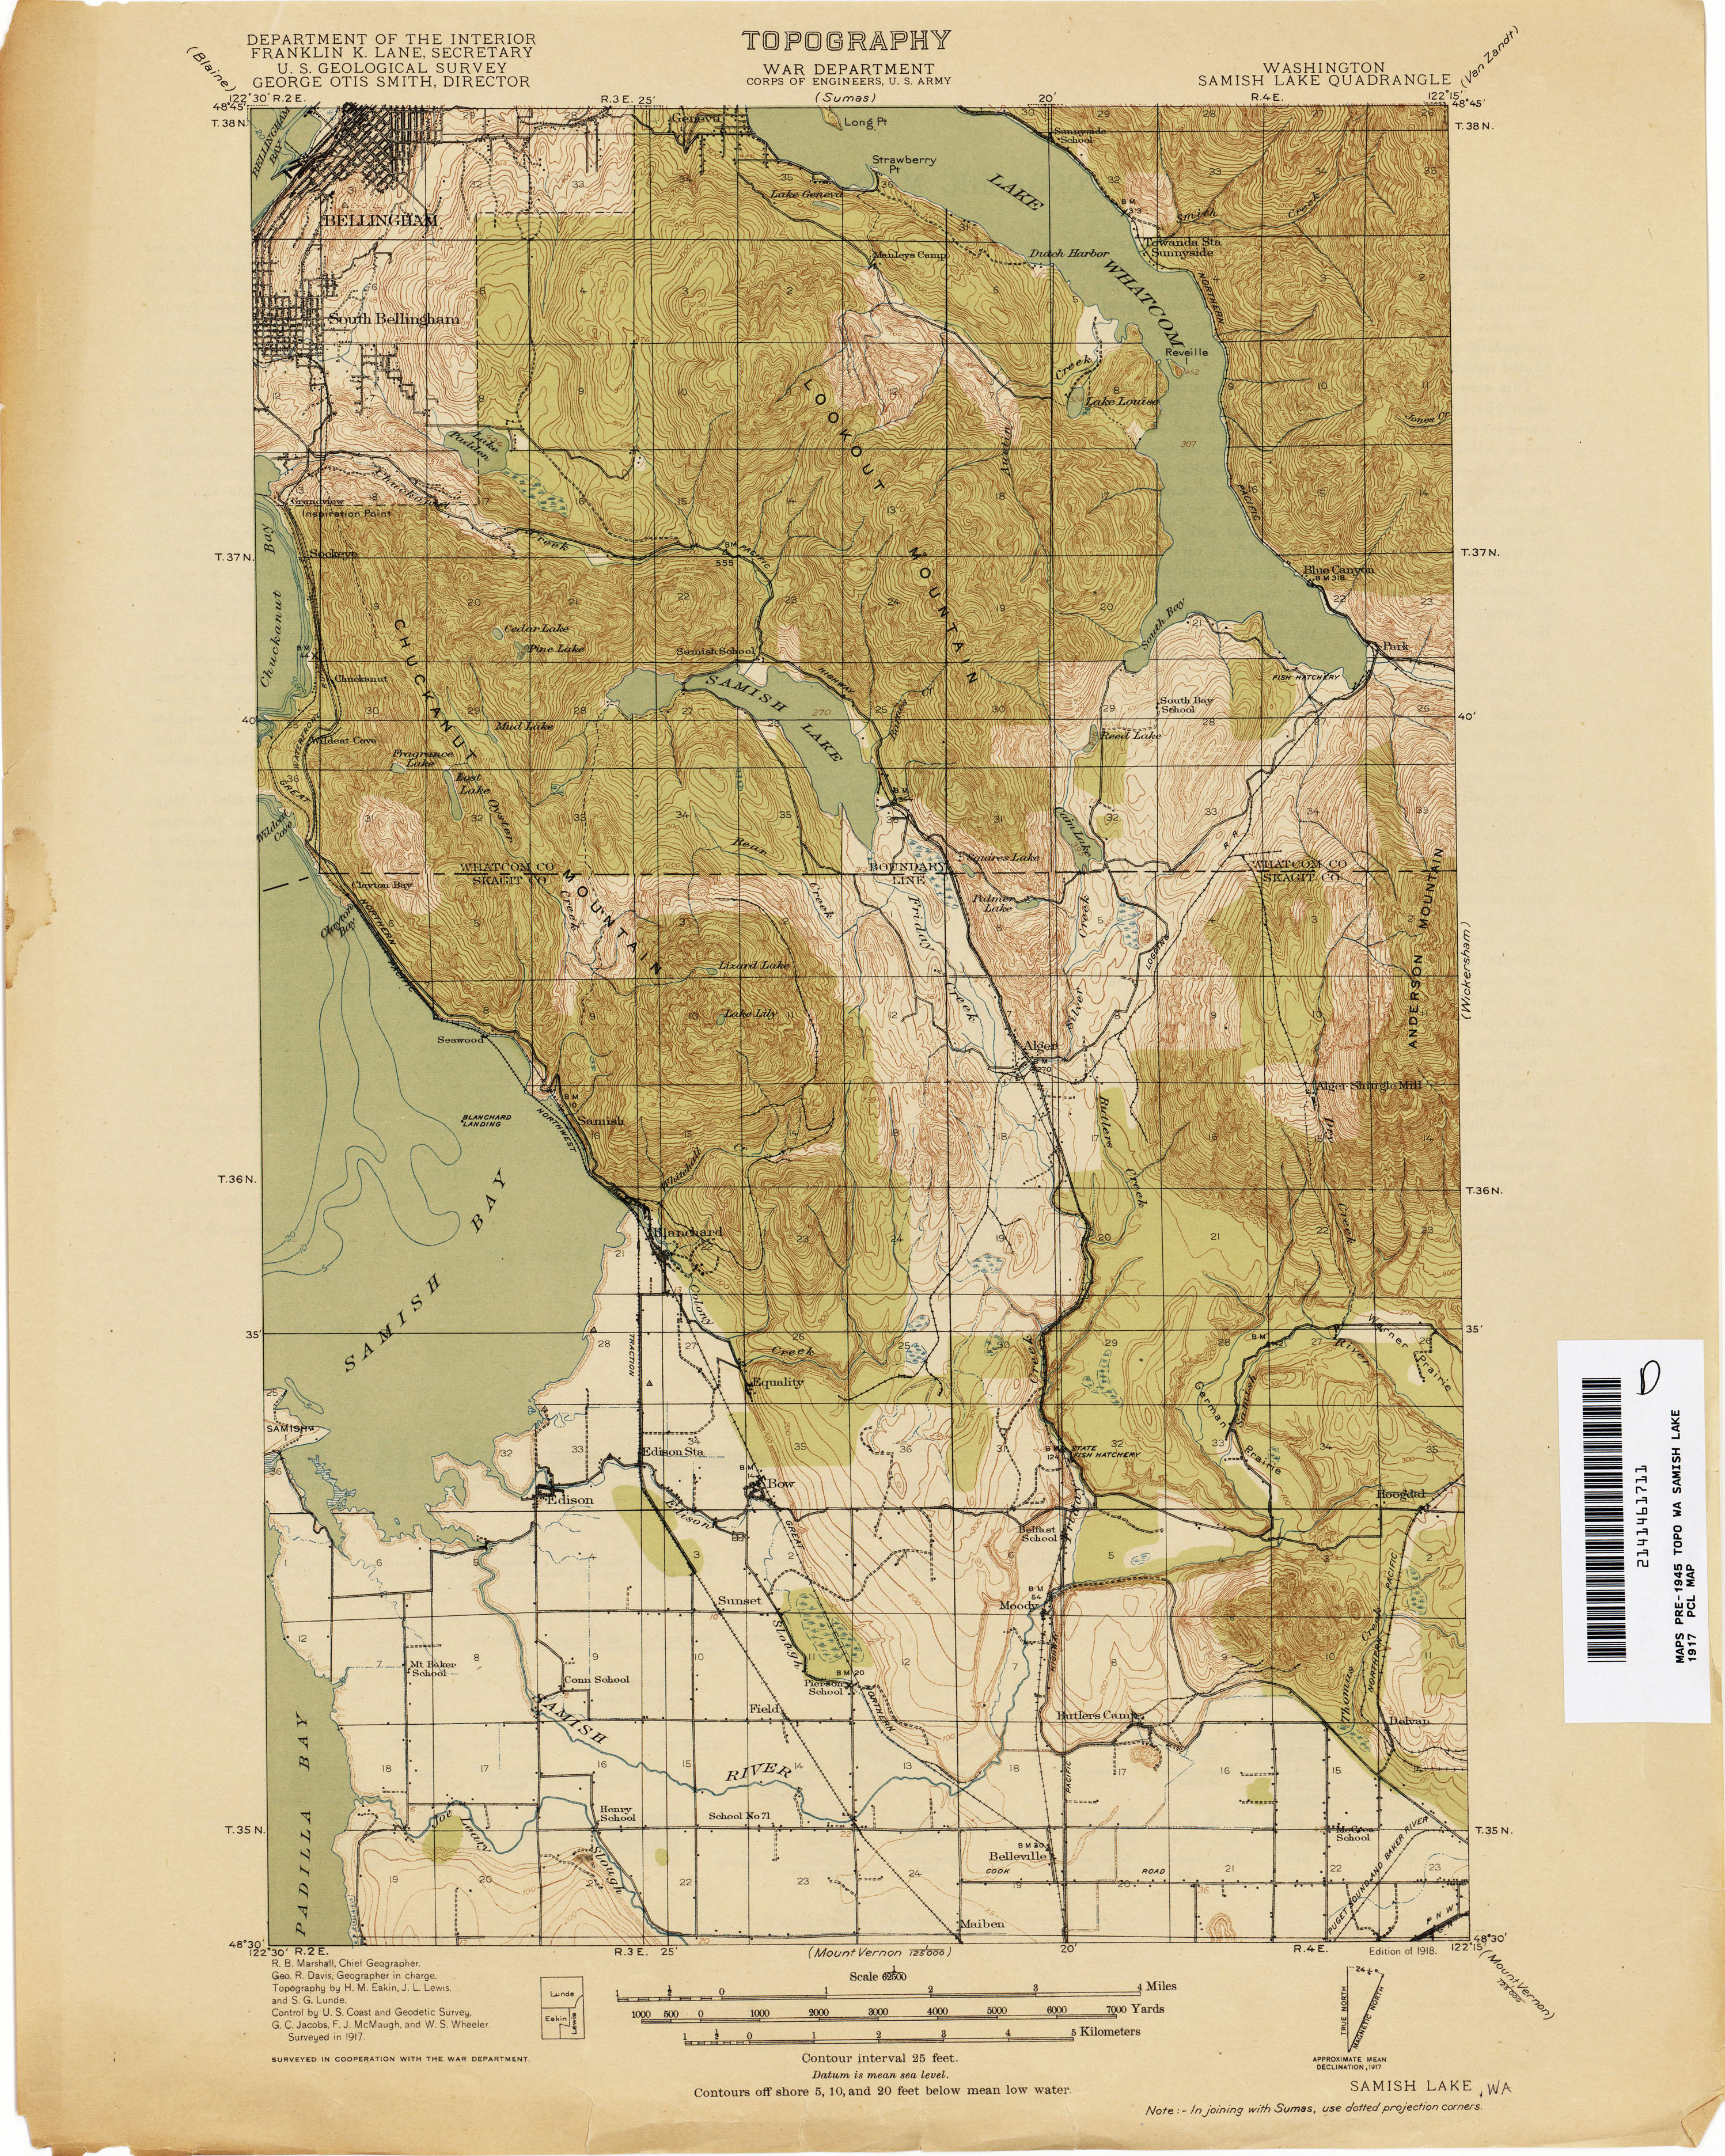 Washington Historical Topographic Maps Perry Castaneda Map Collection Ut Library Online